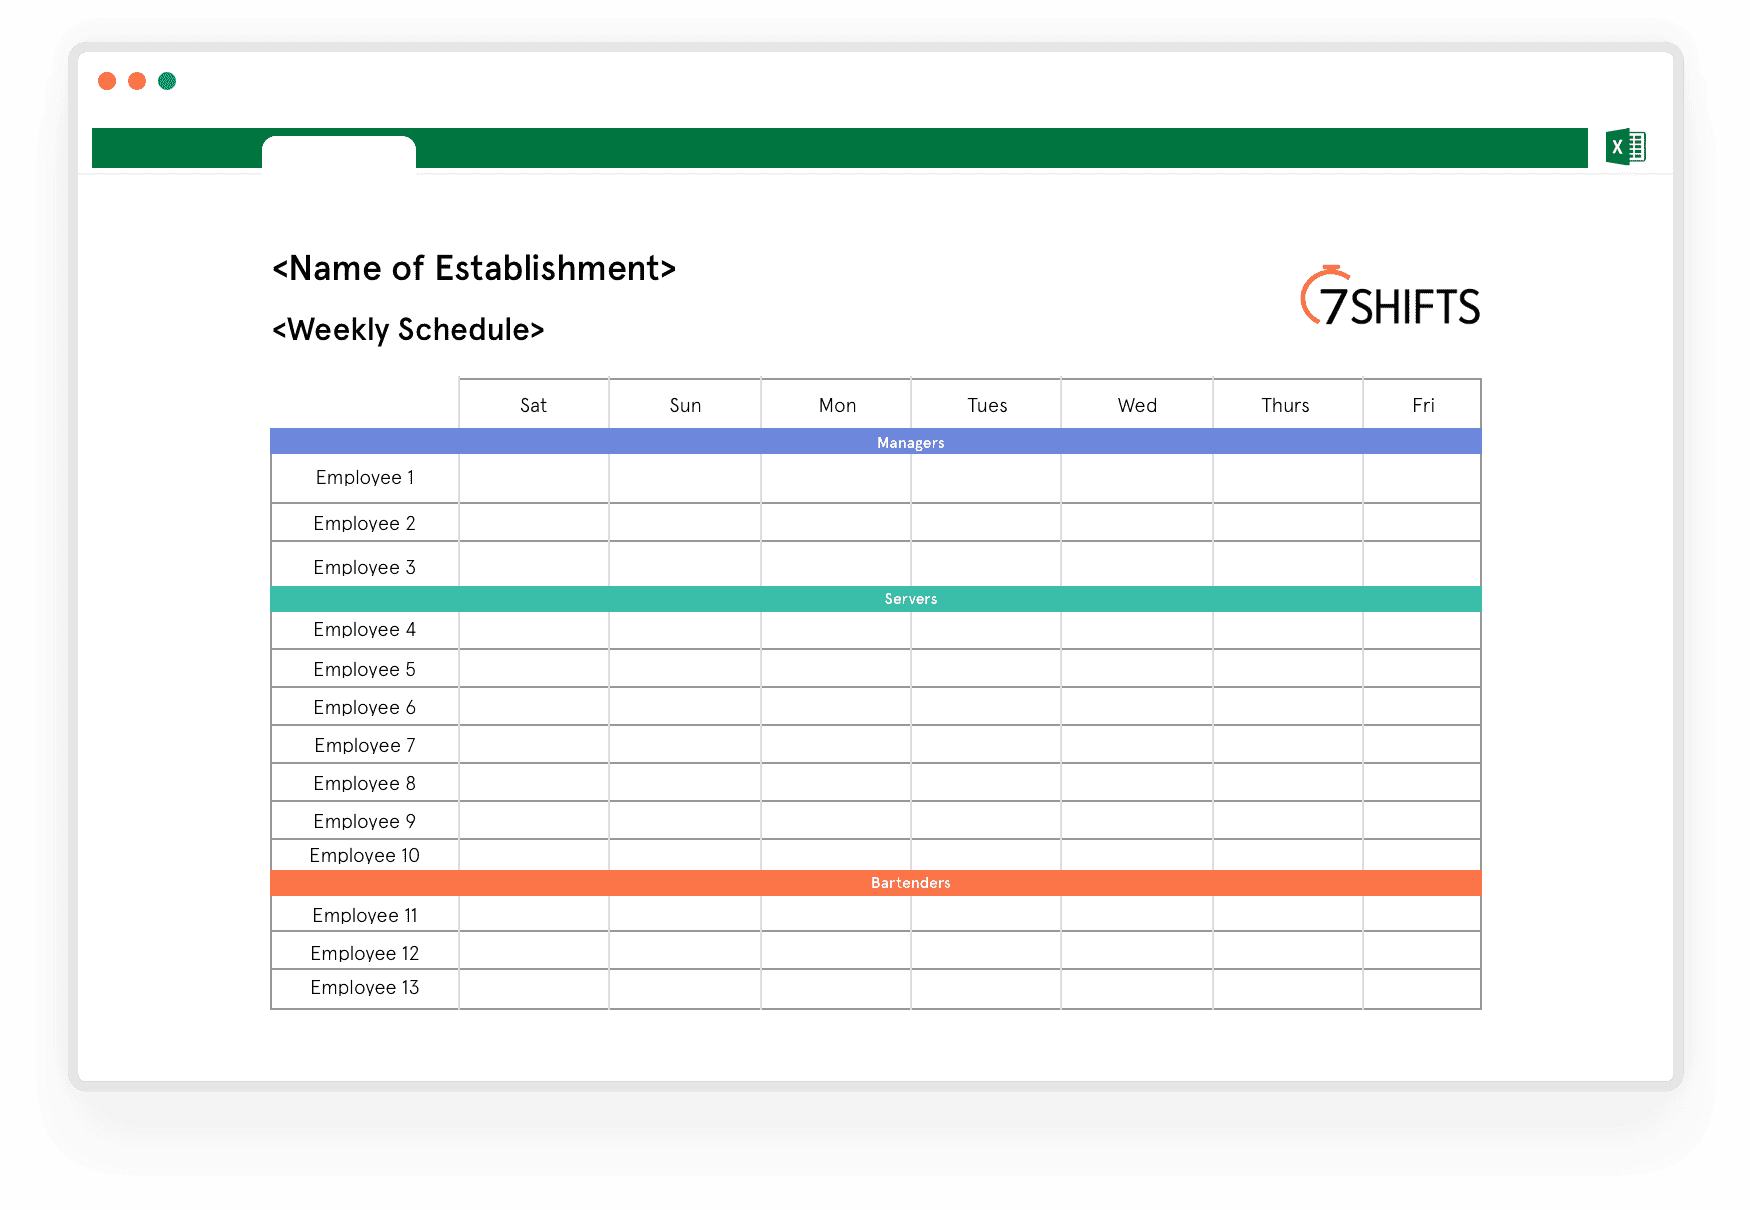 Template for weekly schedule